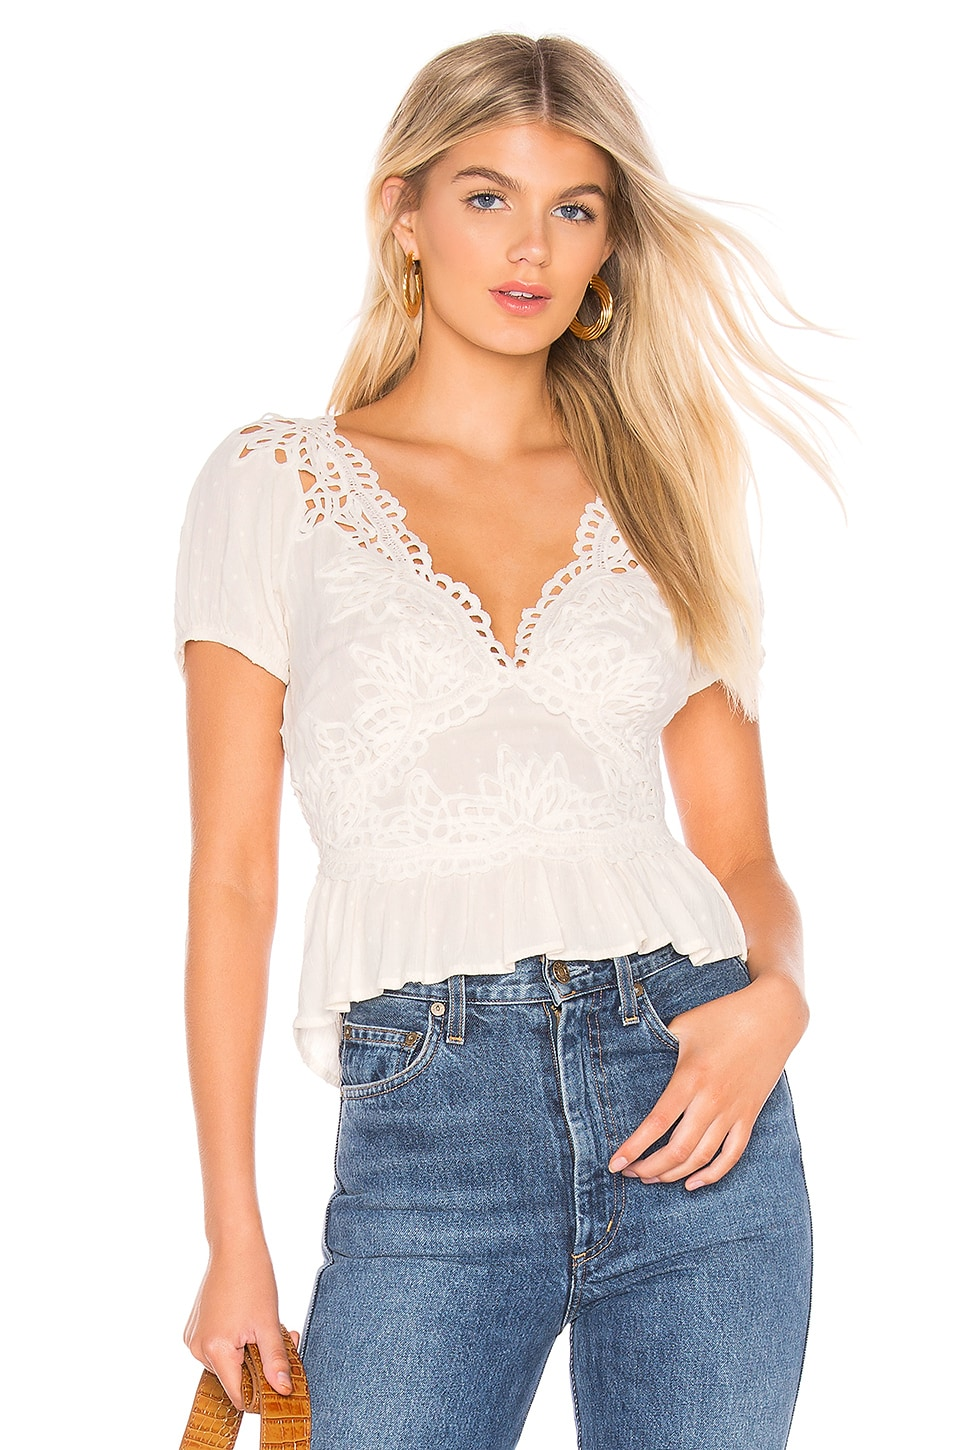 Free People Tops FREE PEOPLE SWEET ROSES BLOUSE IN WHITE.